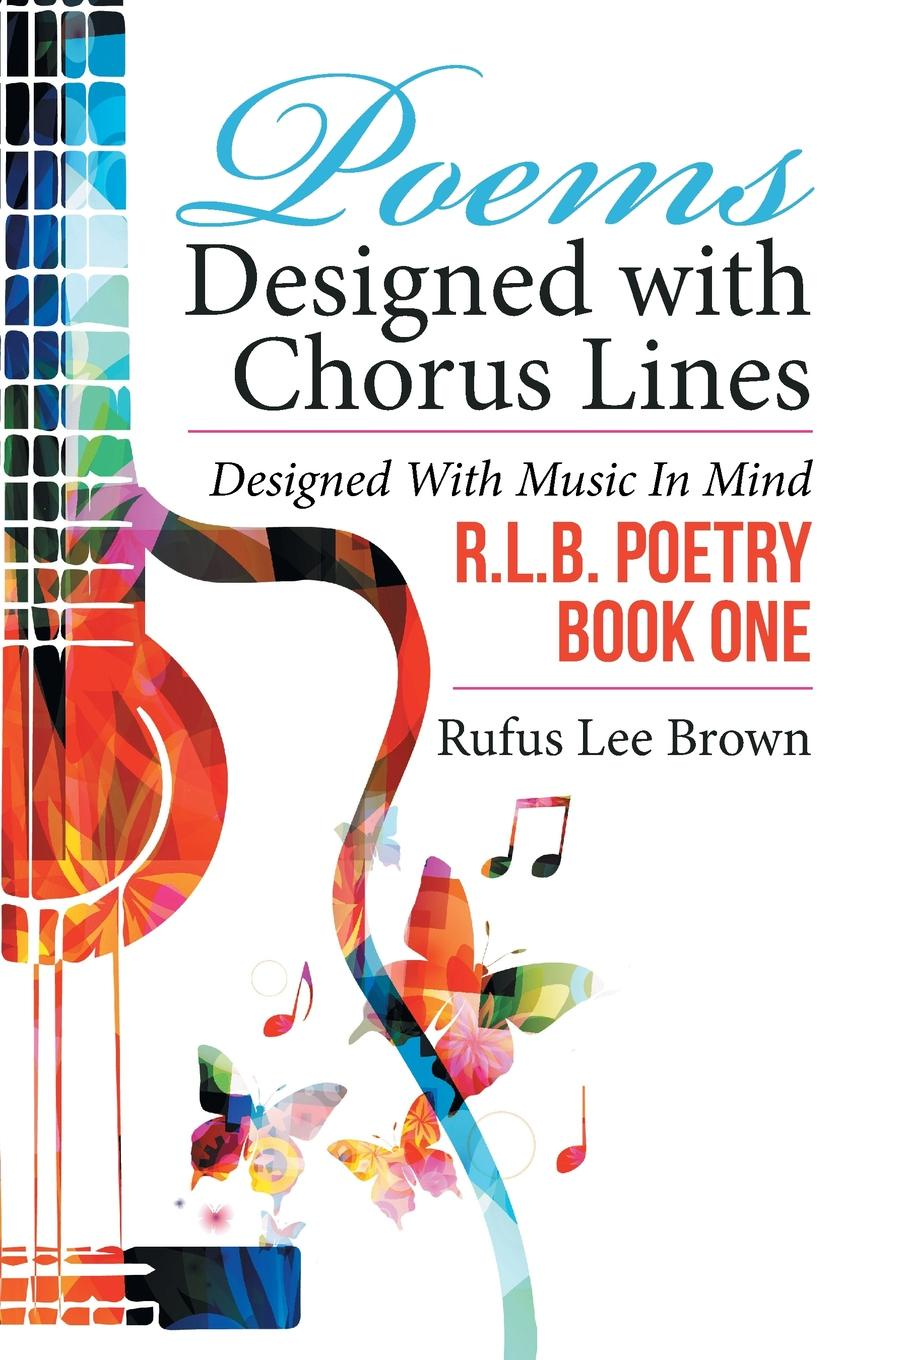 Rufus Lee Brown Poems Designed with Chorus Lines. Music in Mind